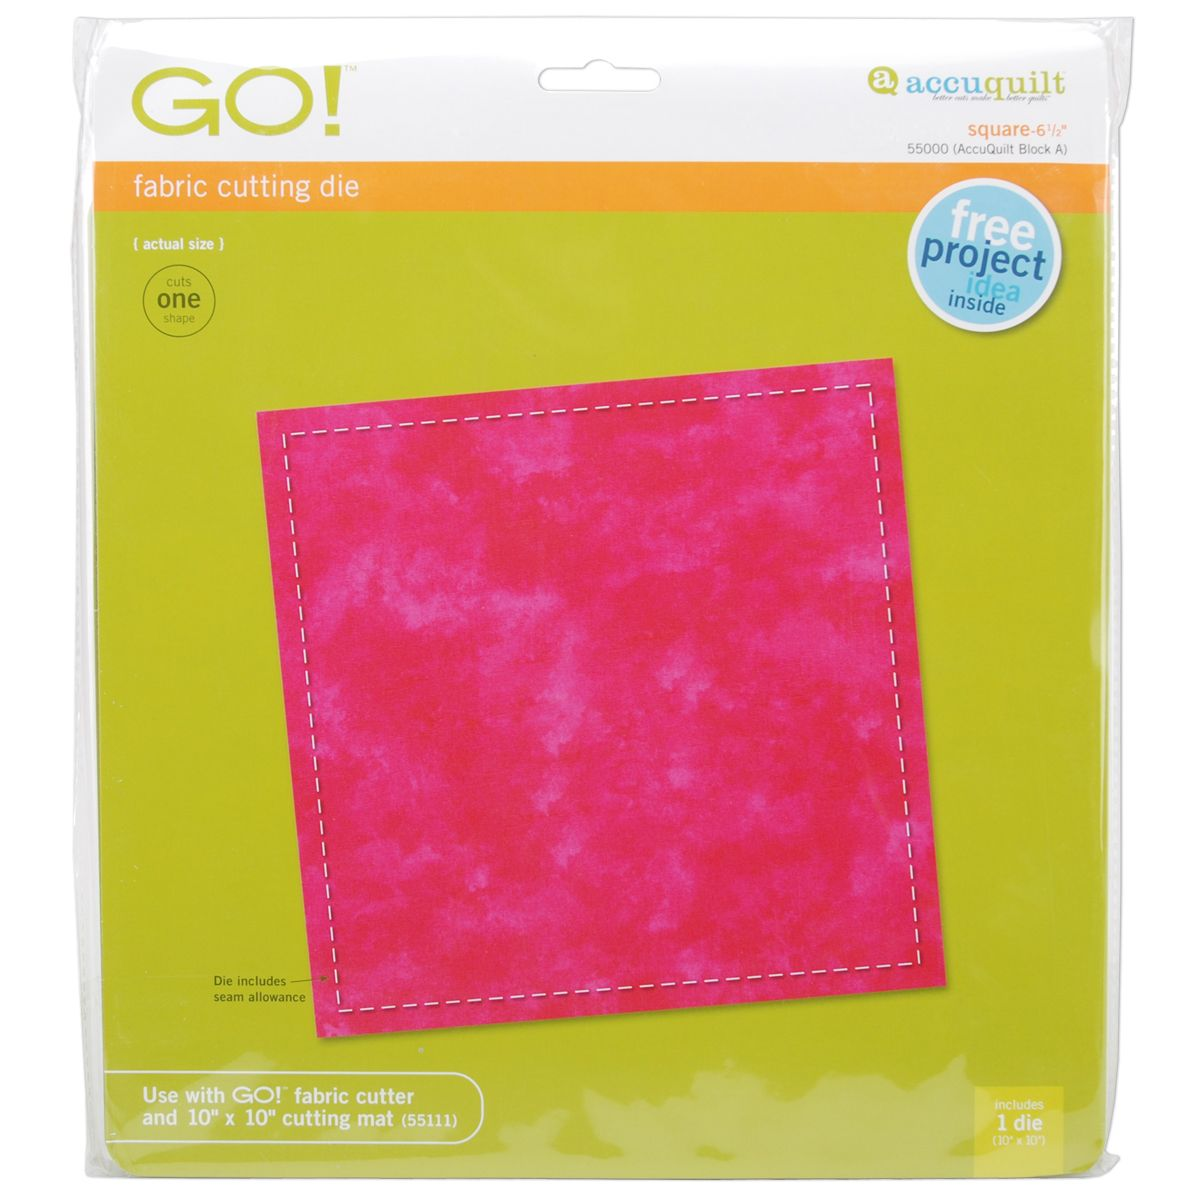 Accuquilt GO! Fabric Cutting Dies-Square 6-1/2